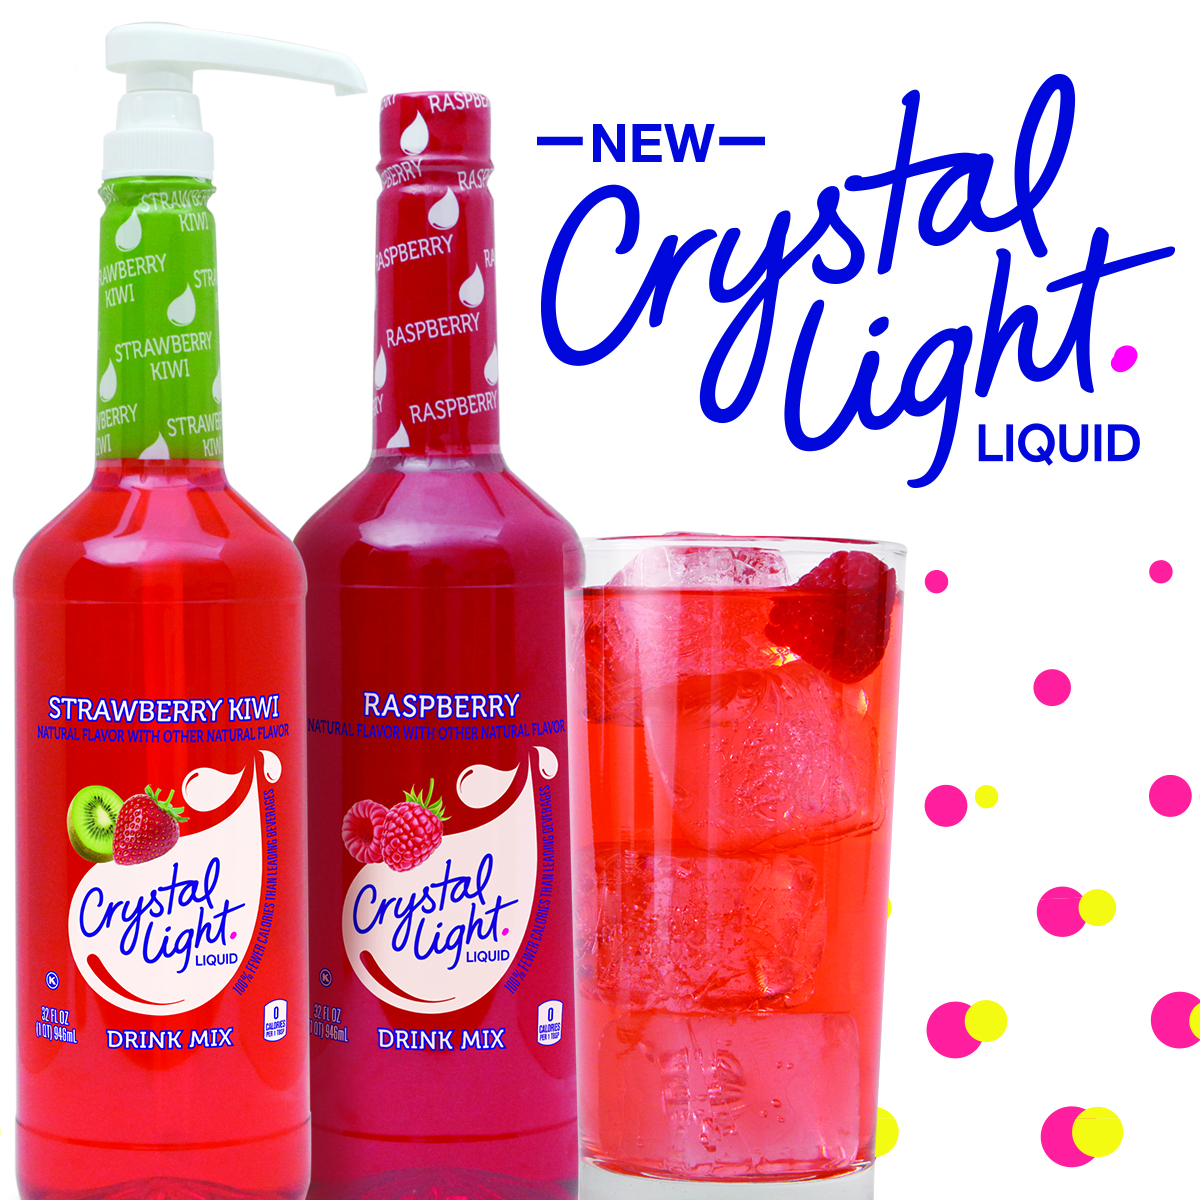 Marvelous New Crystal Light Liquid Concentrate Delivers A Refreshing, Sugar Free,  Low Calorie Drink With Easeu2014simply Pump, Fill And Serve Your Way To New  Beverage ... Images